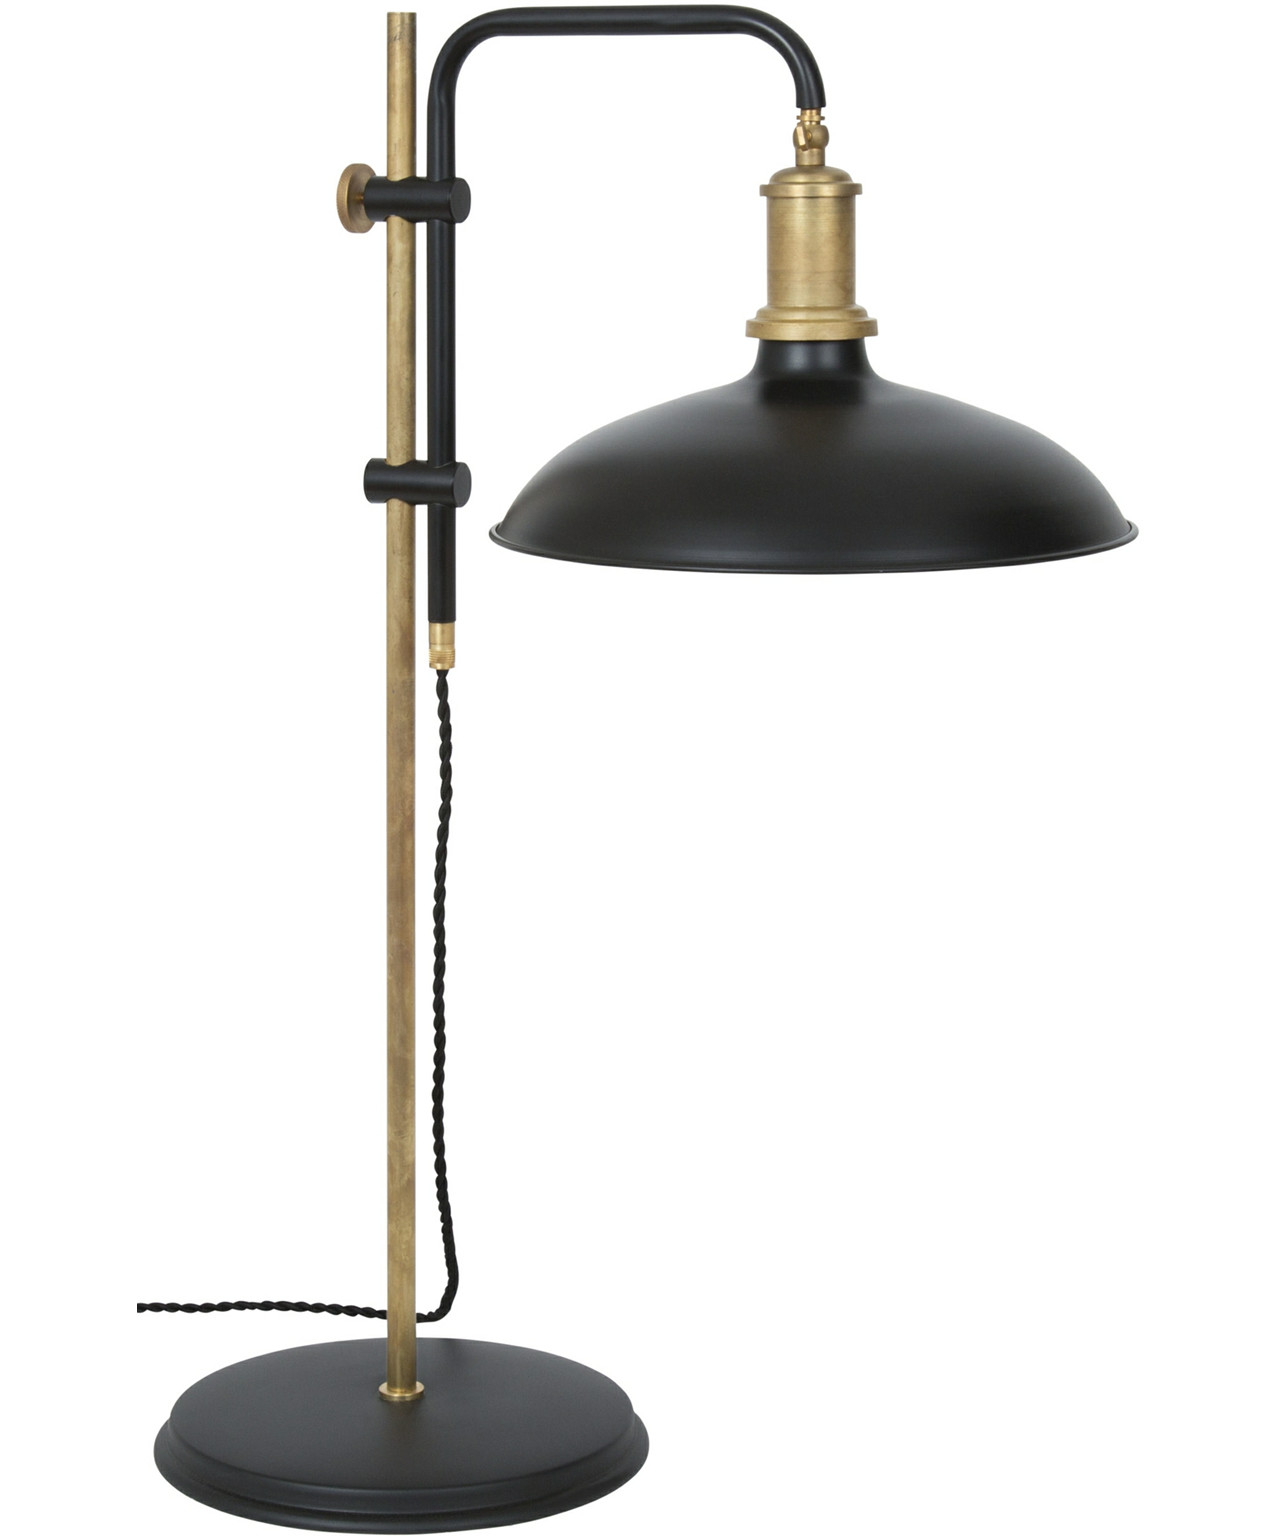 Image of   Kavaljer Bordlampe Mat Sort/Rå Messing - KonstHantverk